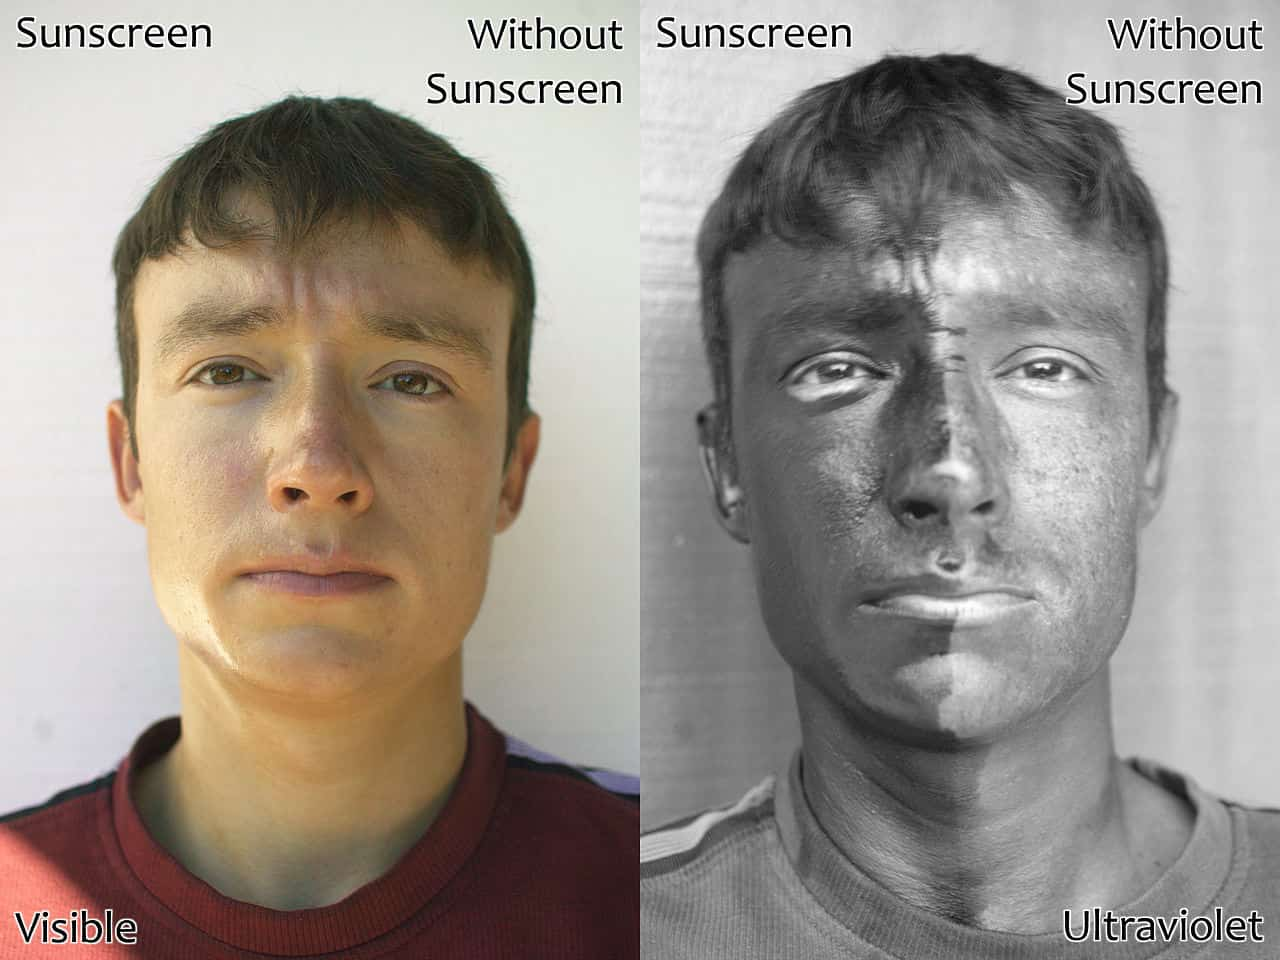 1280px-UV_and_Vis_Sunscreen